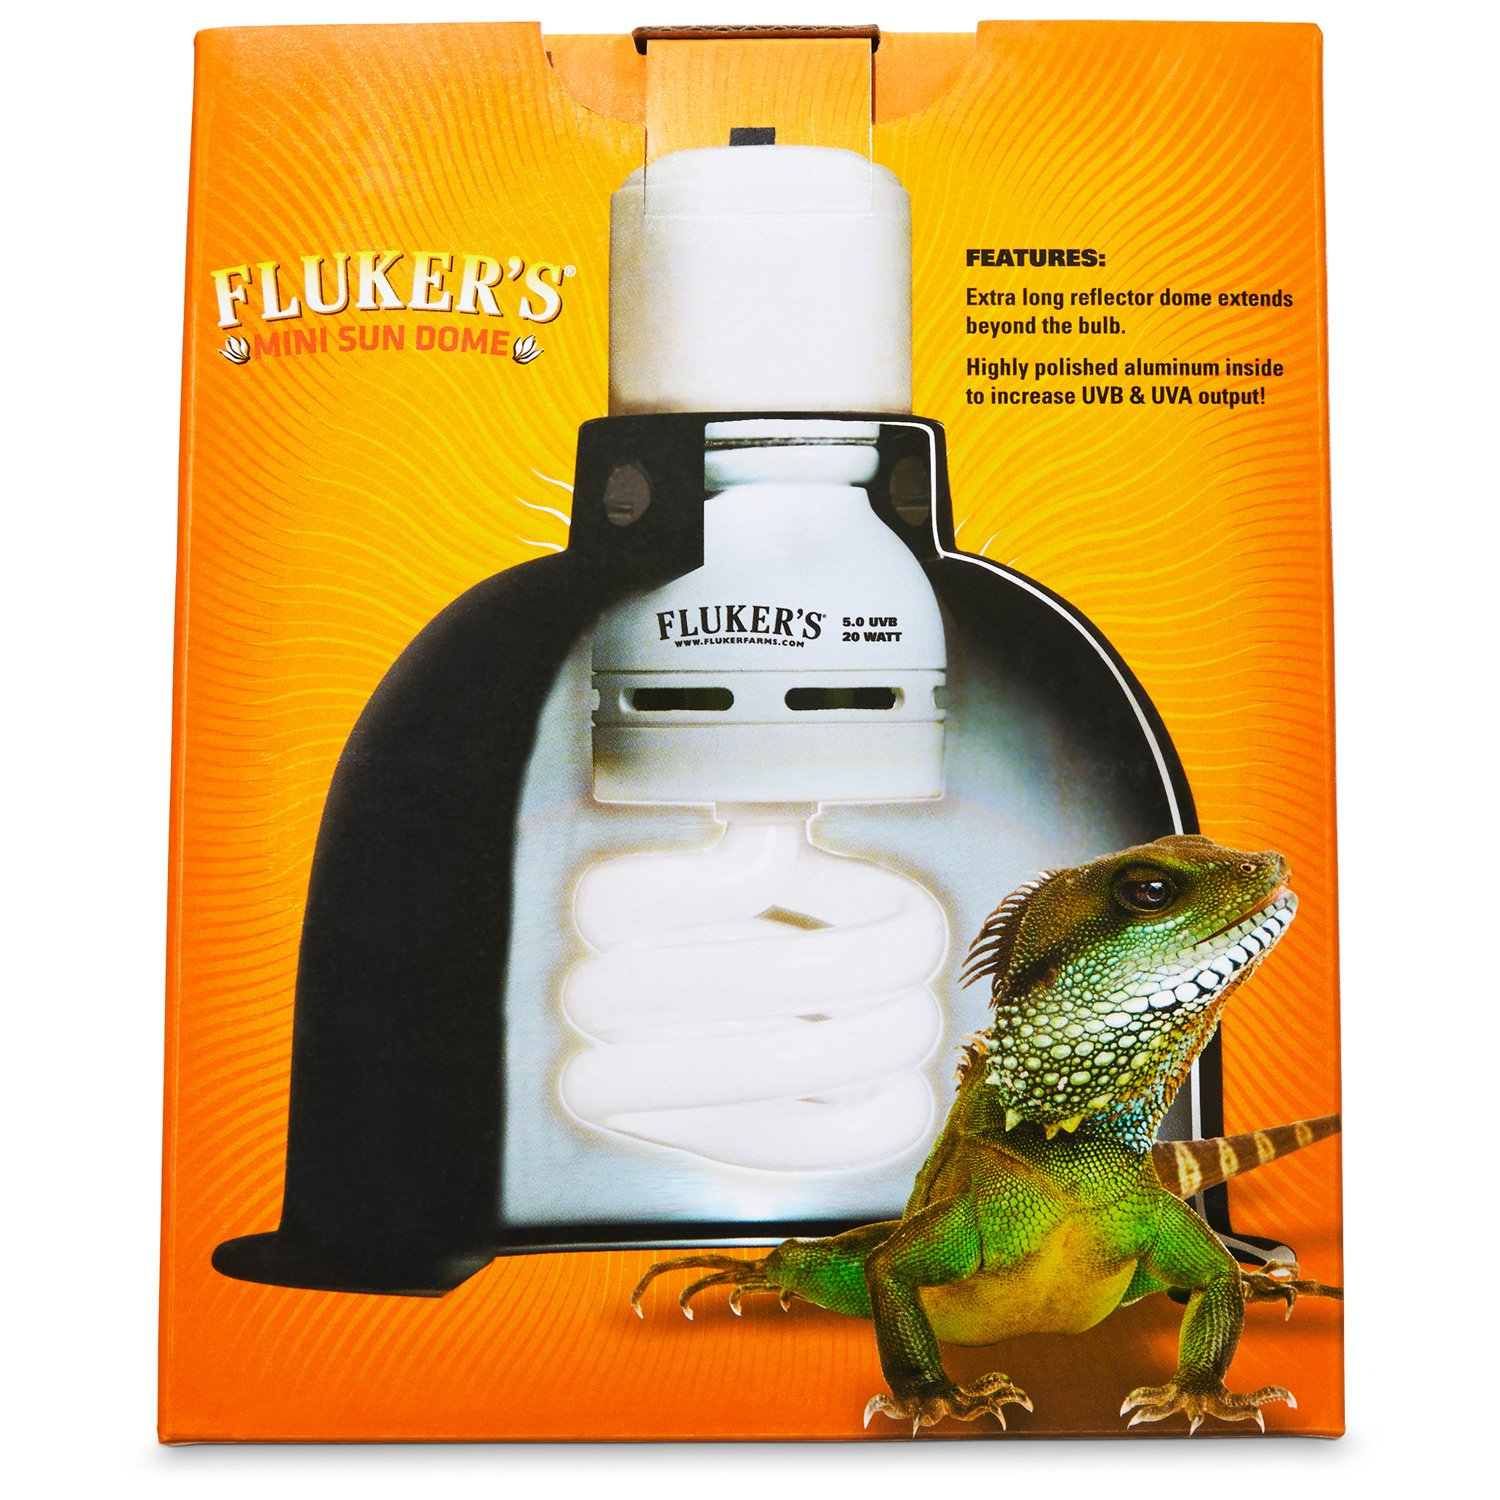 Reptile lights uvb uv lighting lamps bulbs petco flukers mini sun dome reptile lamp arubaitofo Choice Image